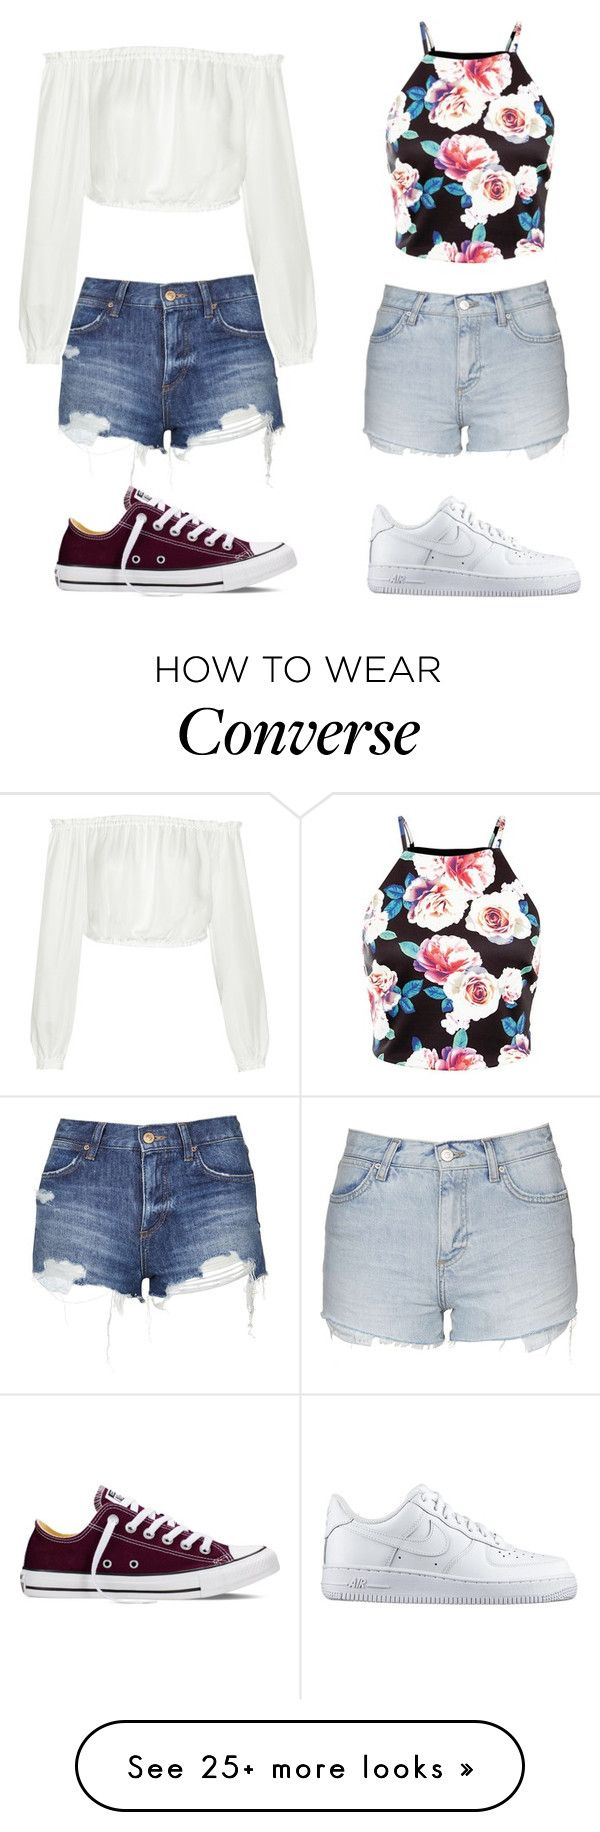 """""""1 or 2"""" by shopaholic02 on Polyvore featuring Topshop, Elizabeth and James, NIKE and Converse"""